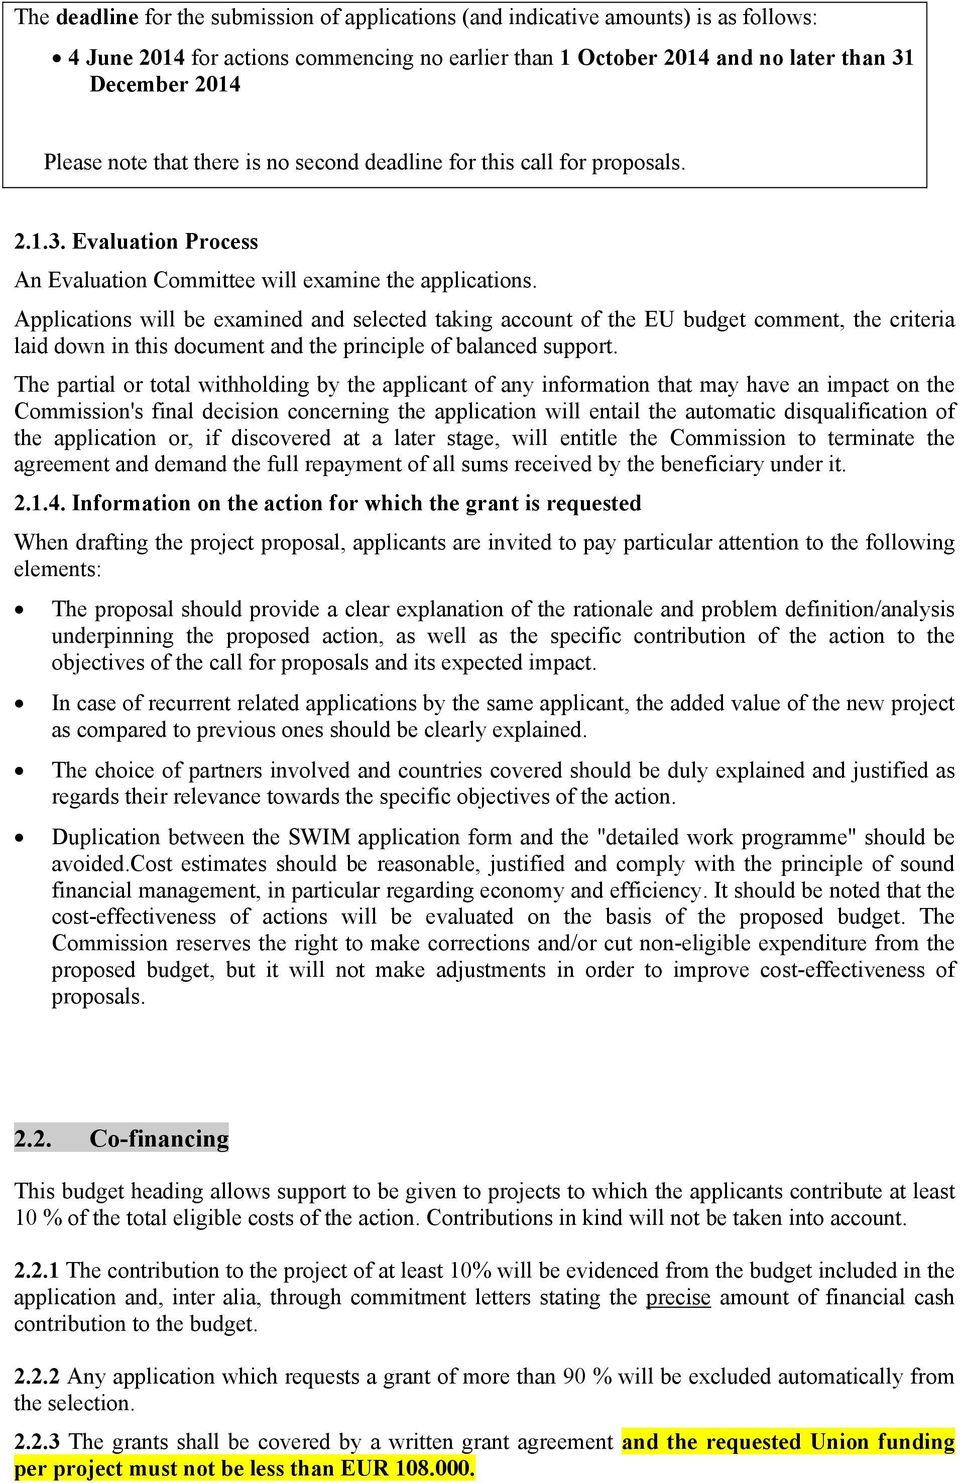 Applications will be examined and selected taking account of the EU budget comment, the criteria laid down in this document and the principle of balanced support.